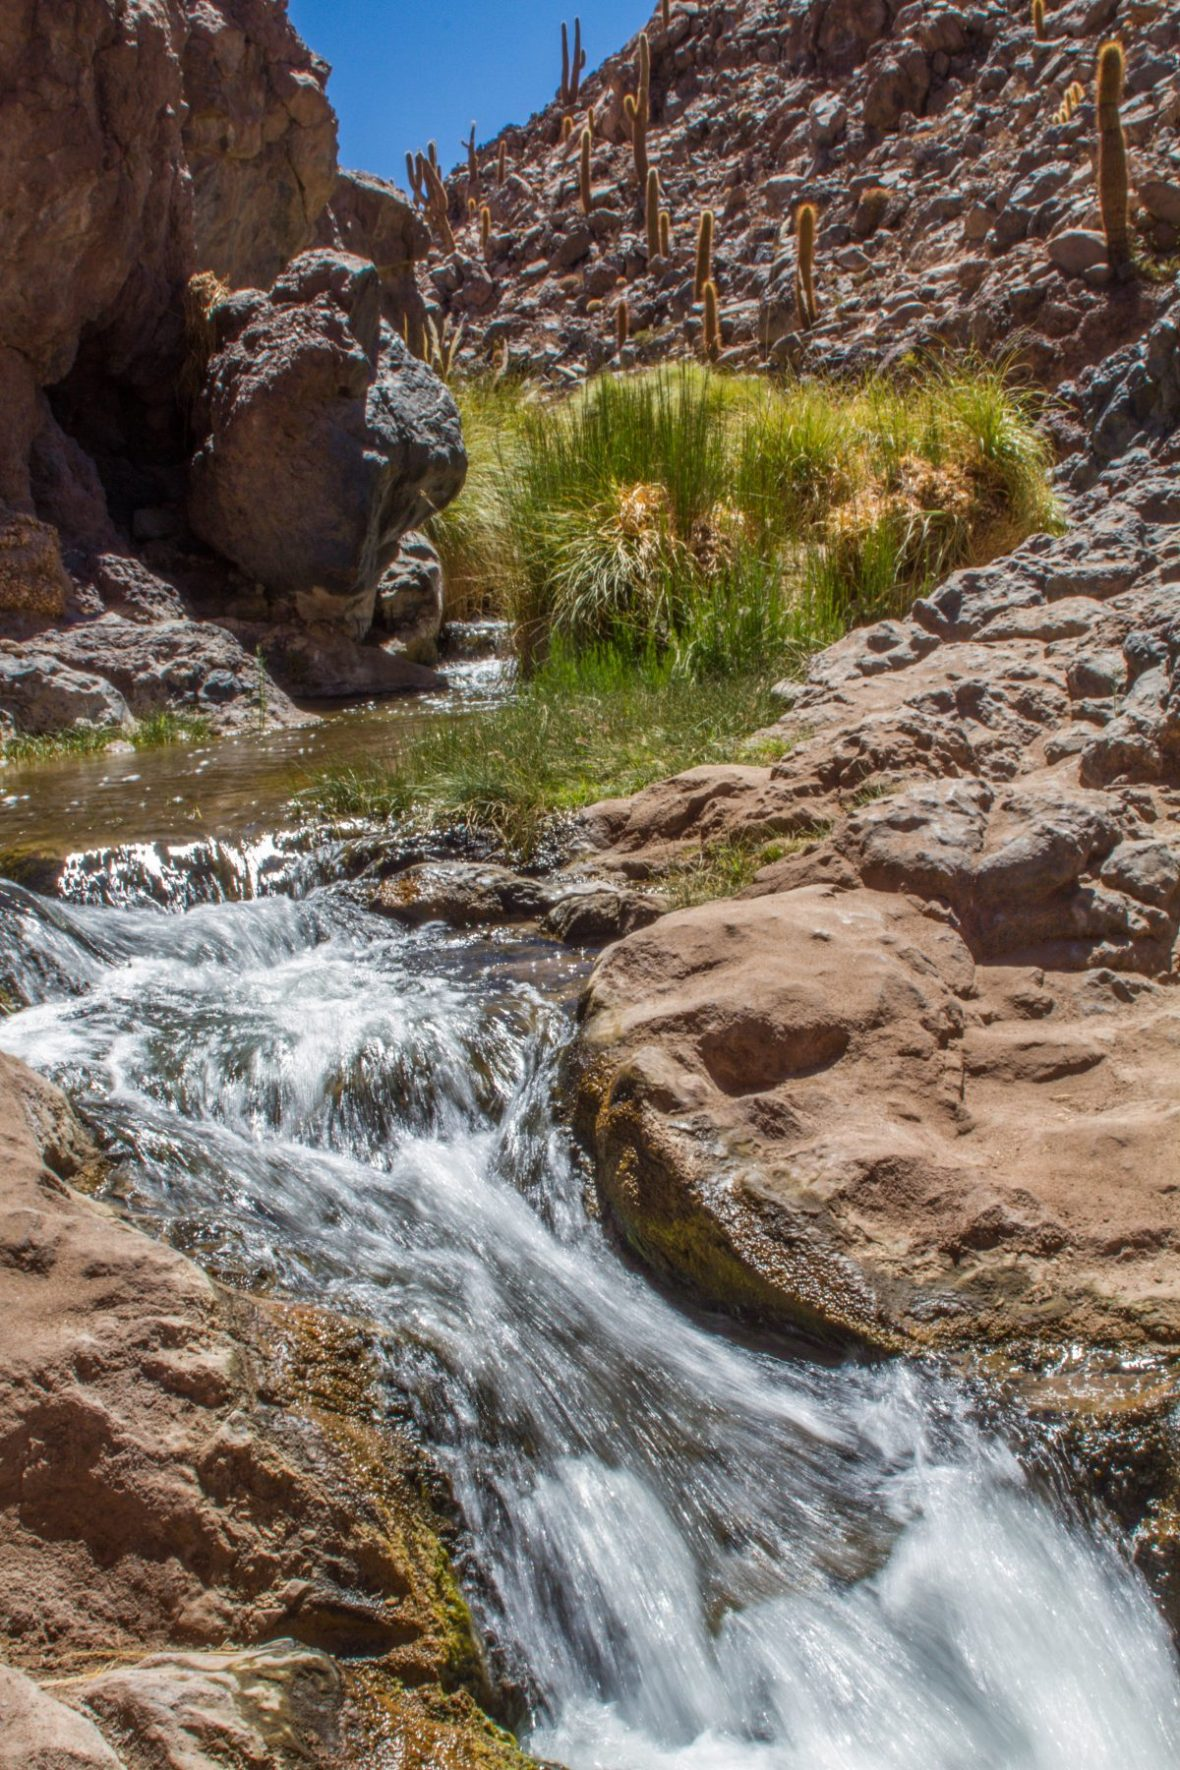 Waterfall in Cactus Valley.